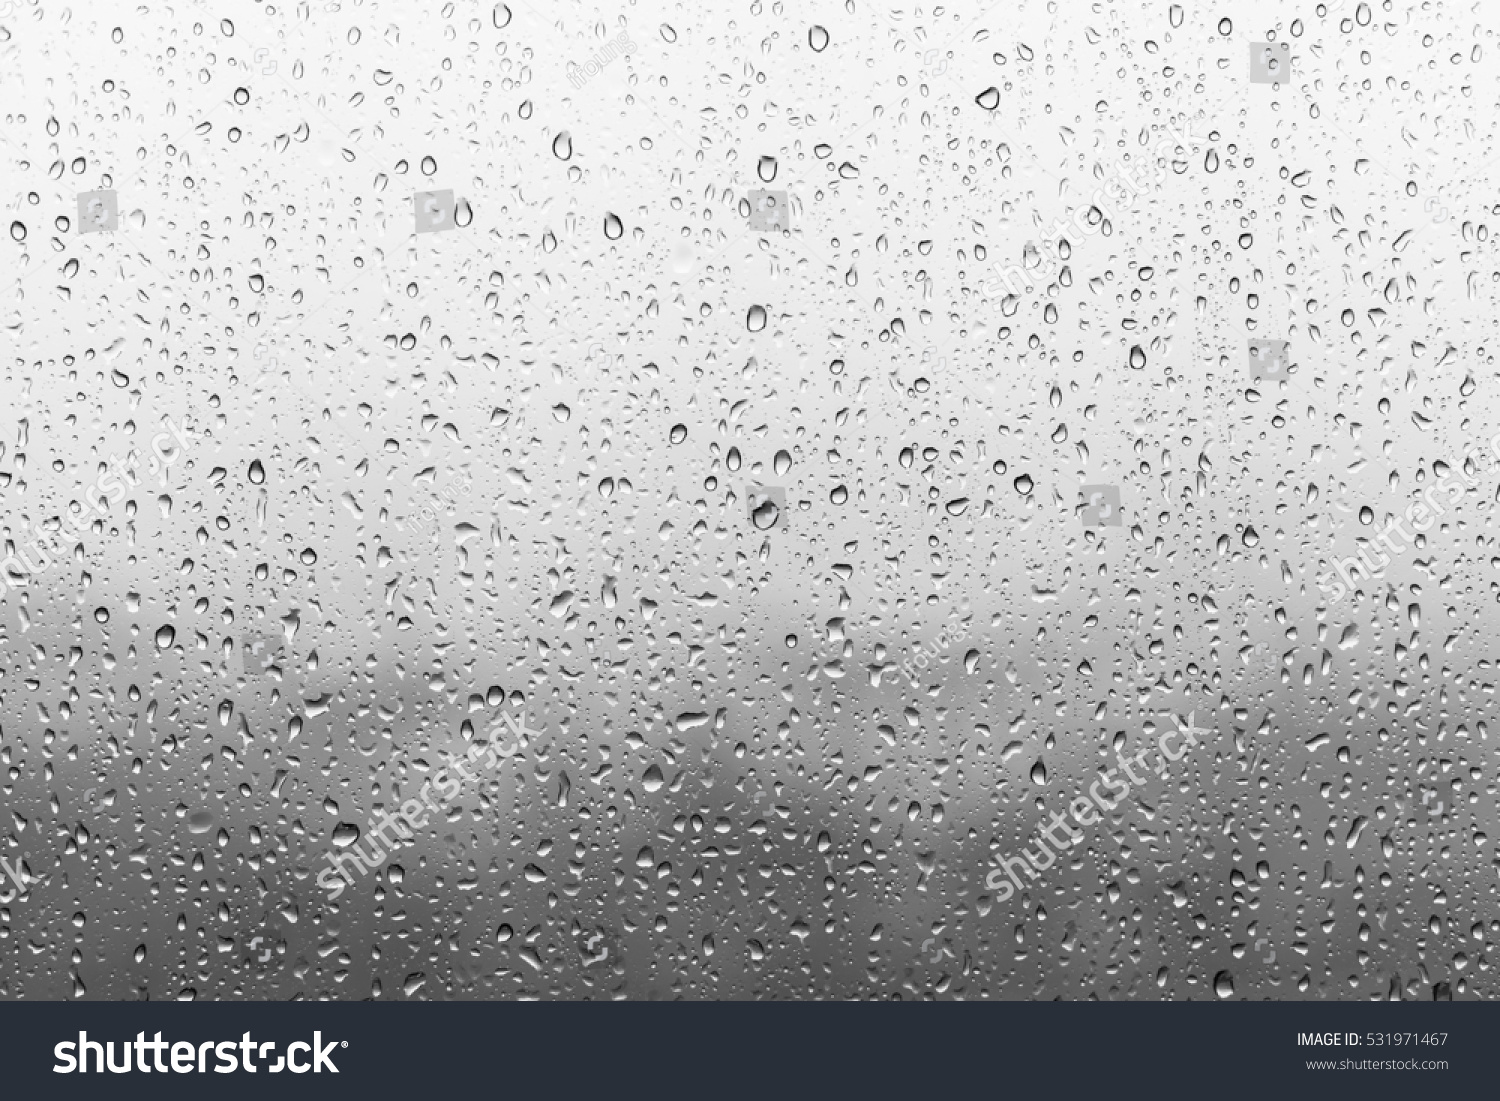 Rain drops on window glasses surface with cloudy background . Natural Pattern of raindrops isolated on cloudy background. #531971467